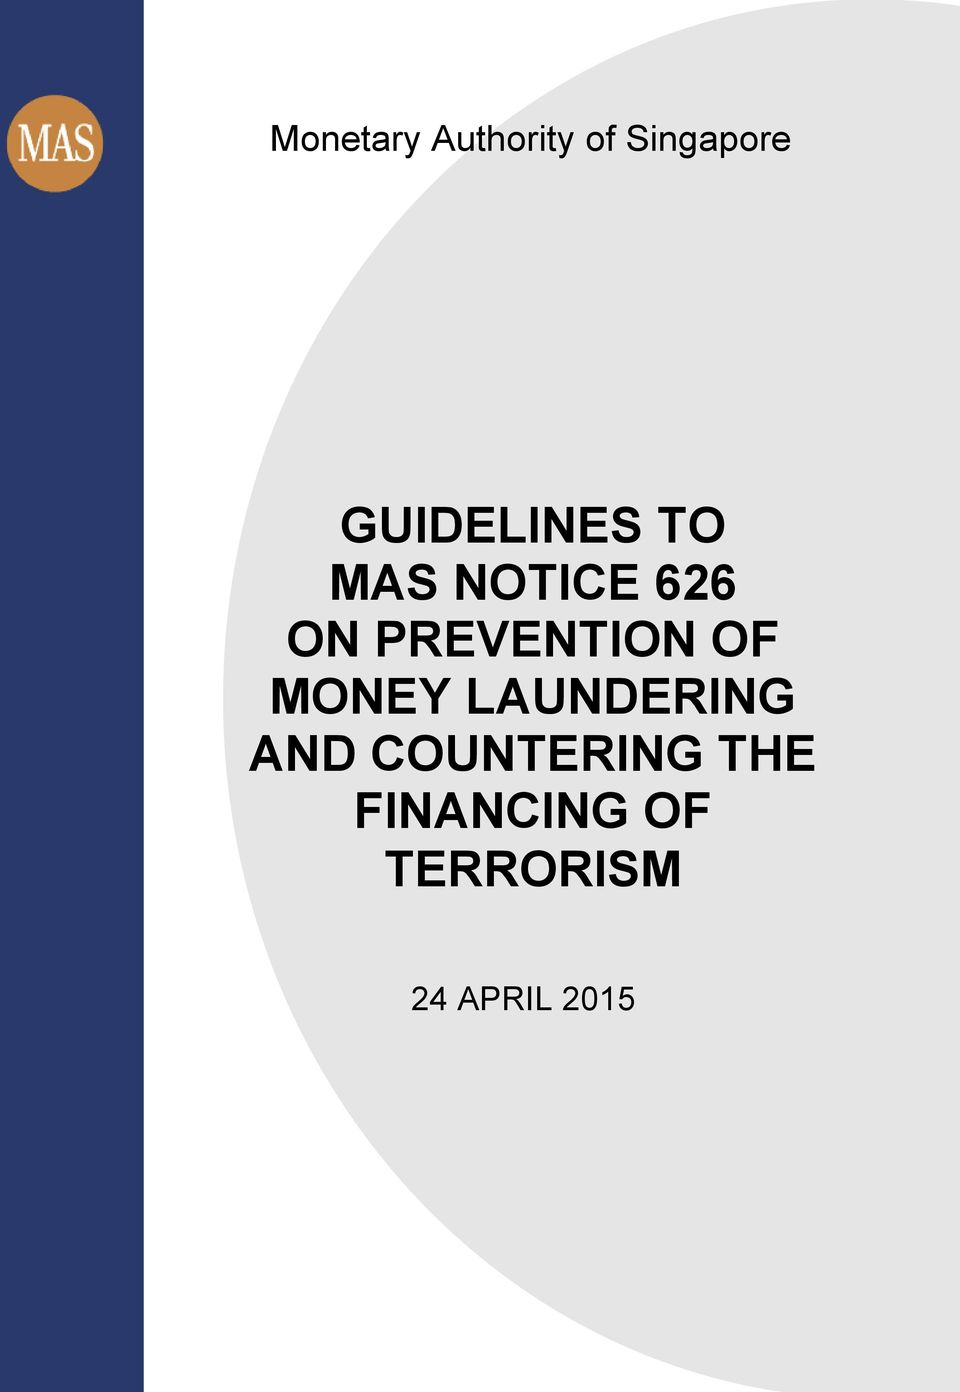 PREVENTION OF MONEY LAUNDERING AND